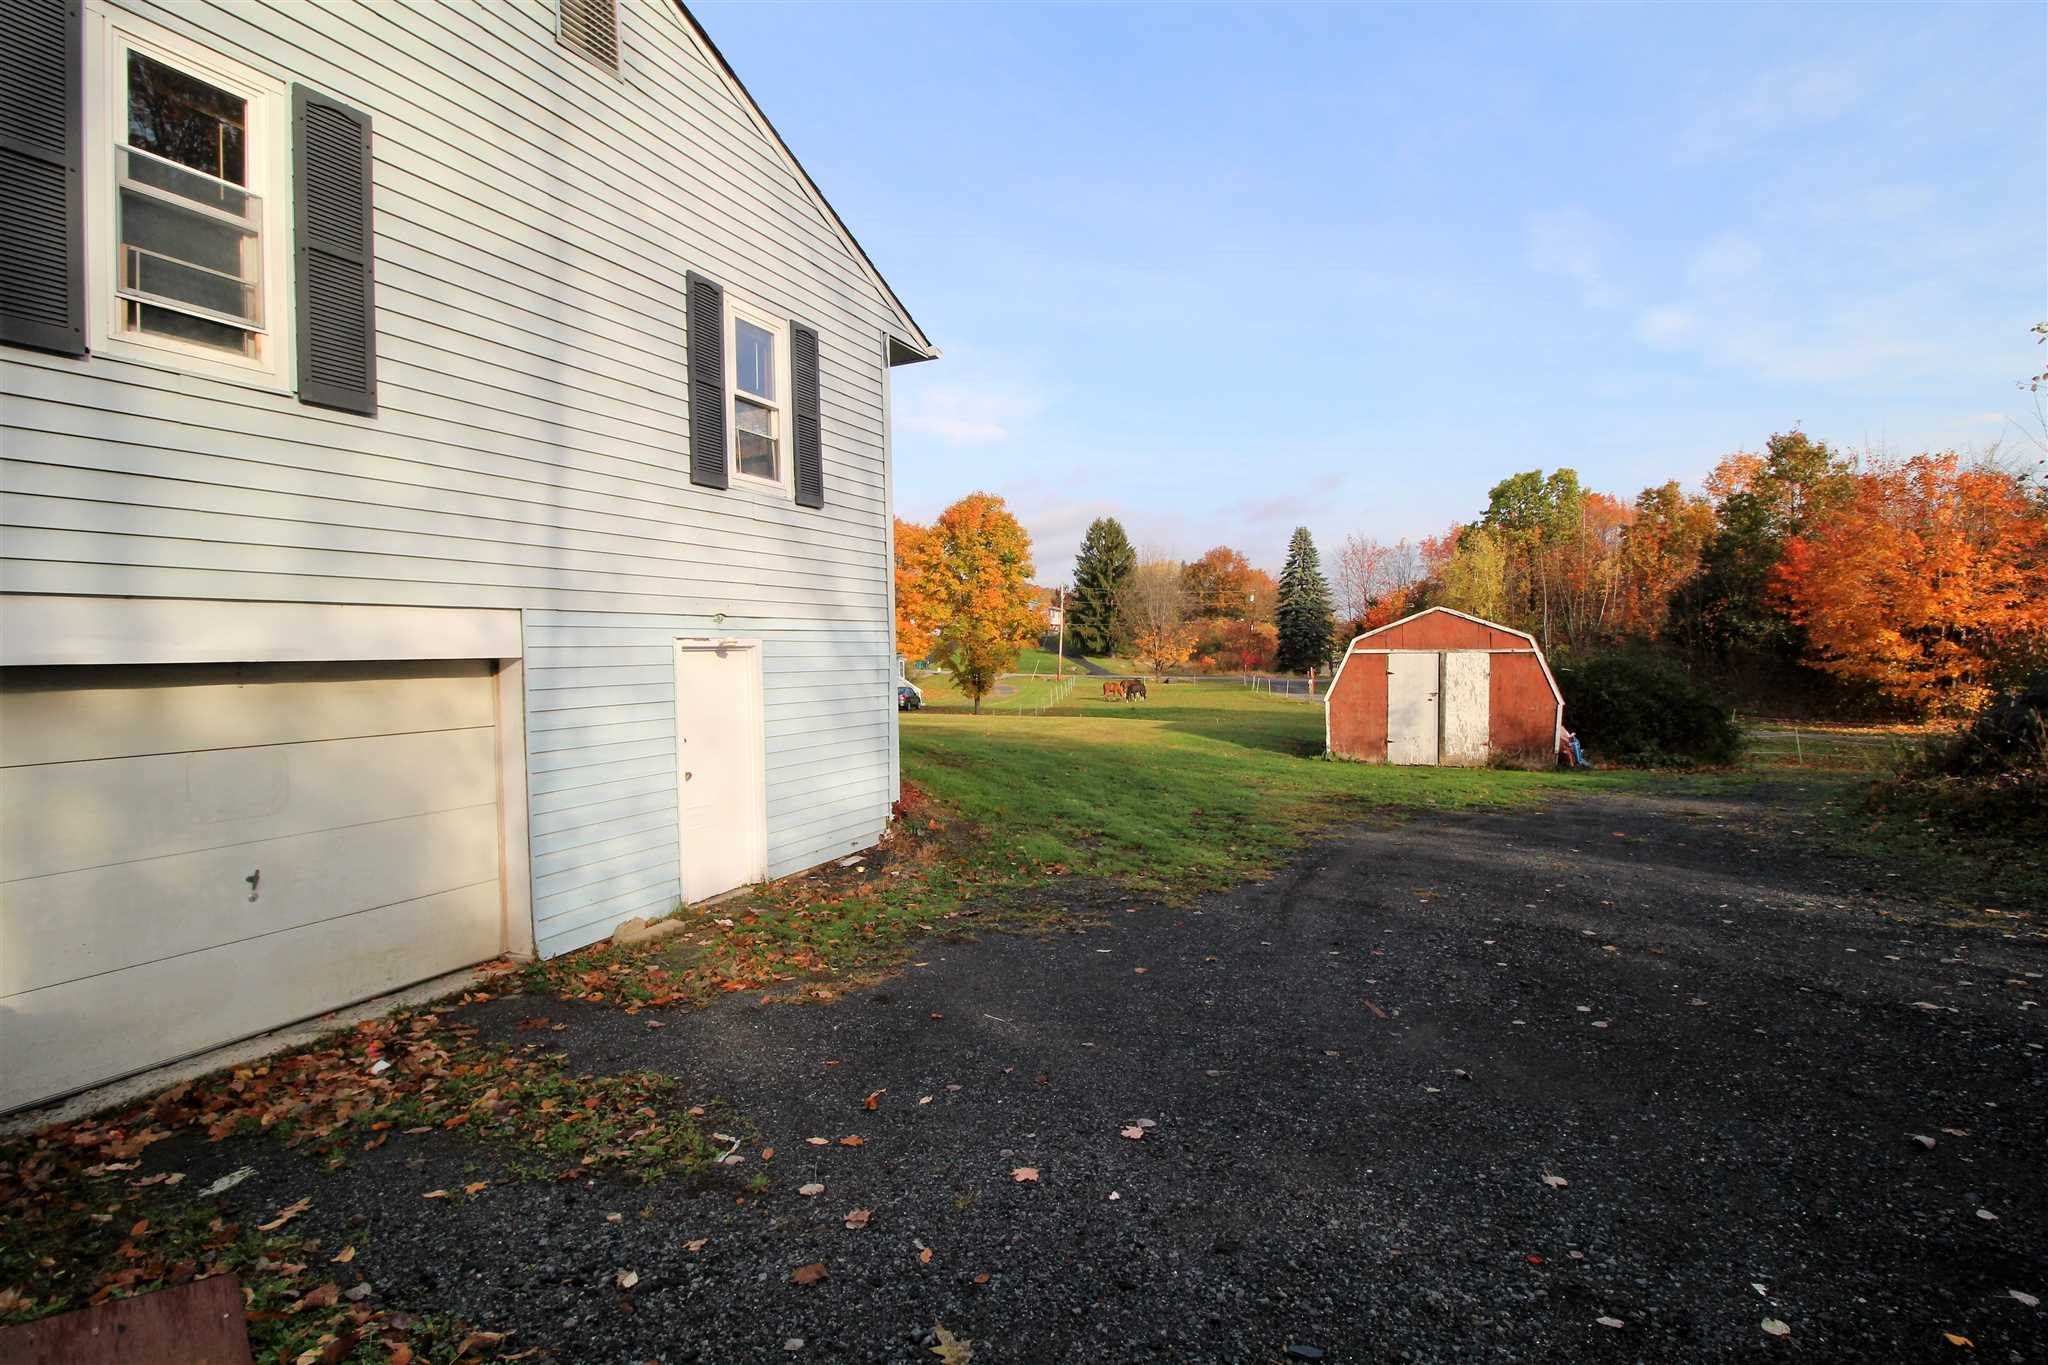 Additional photo for property listing at 133 MT. ZION ROAD 133 MT. ZION ROAD Marlborough, New York 12542 United States